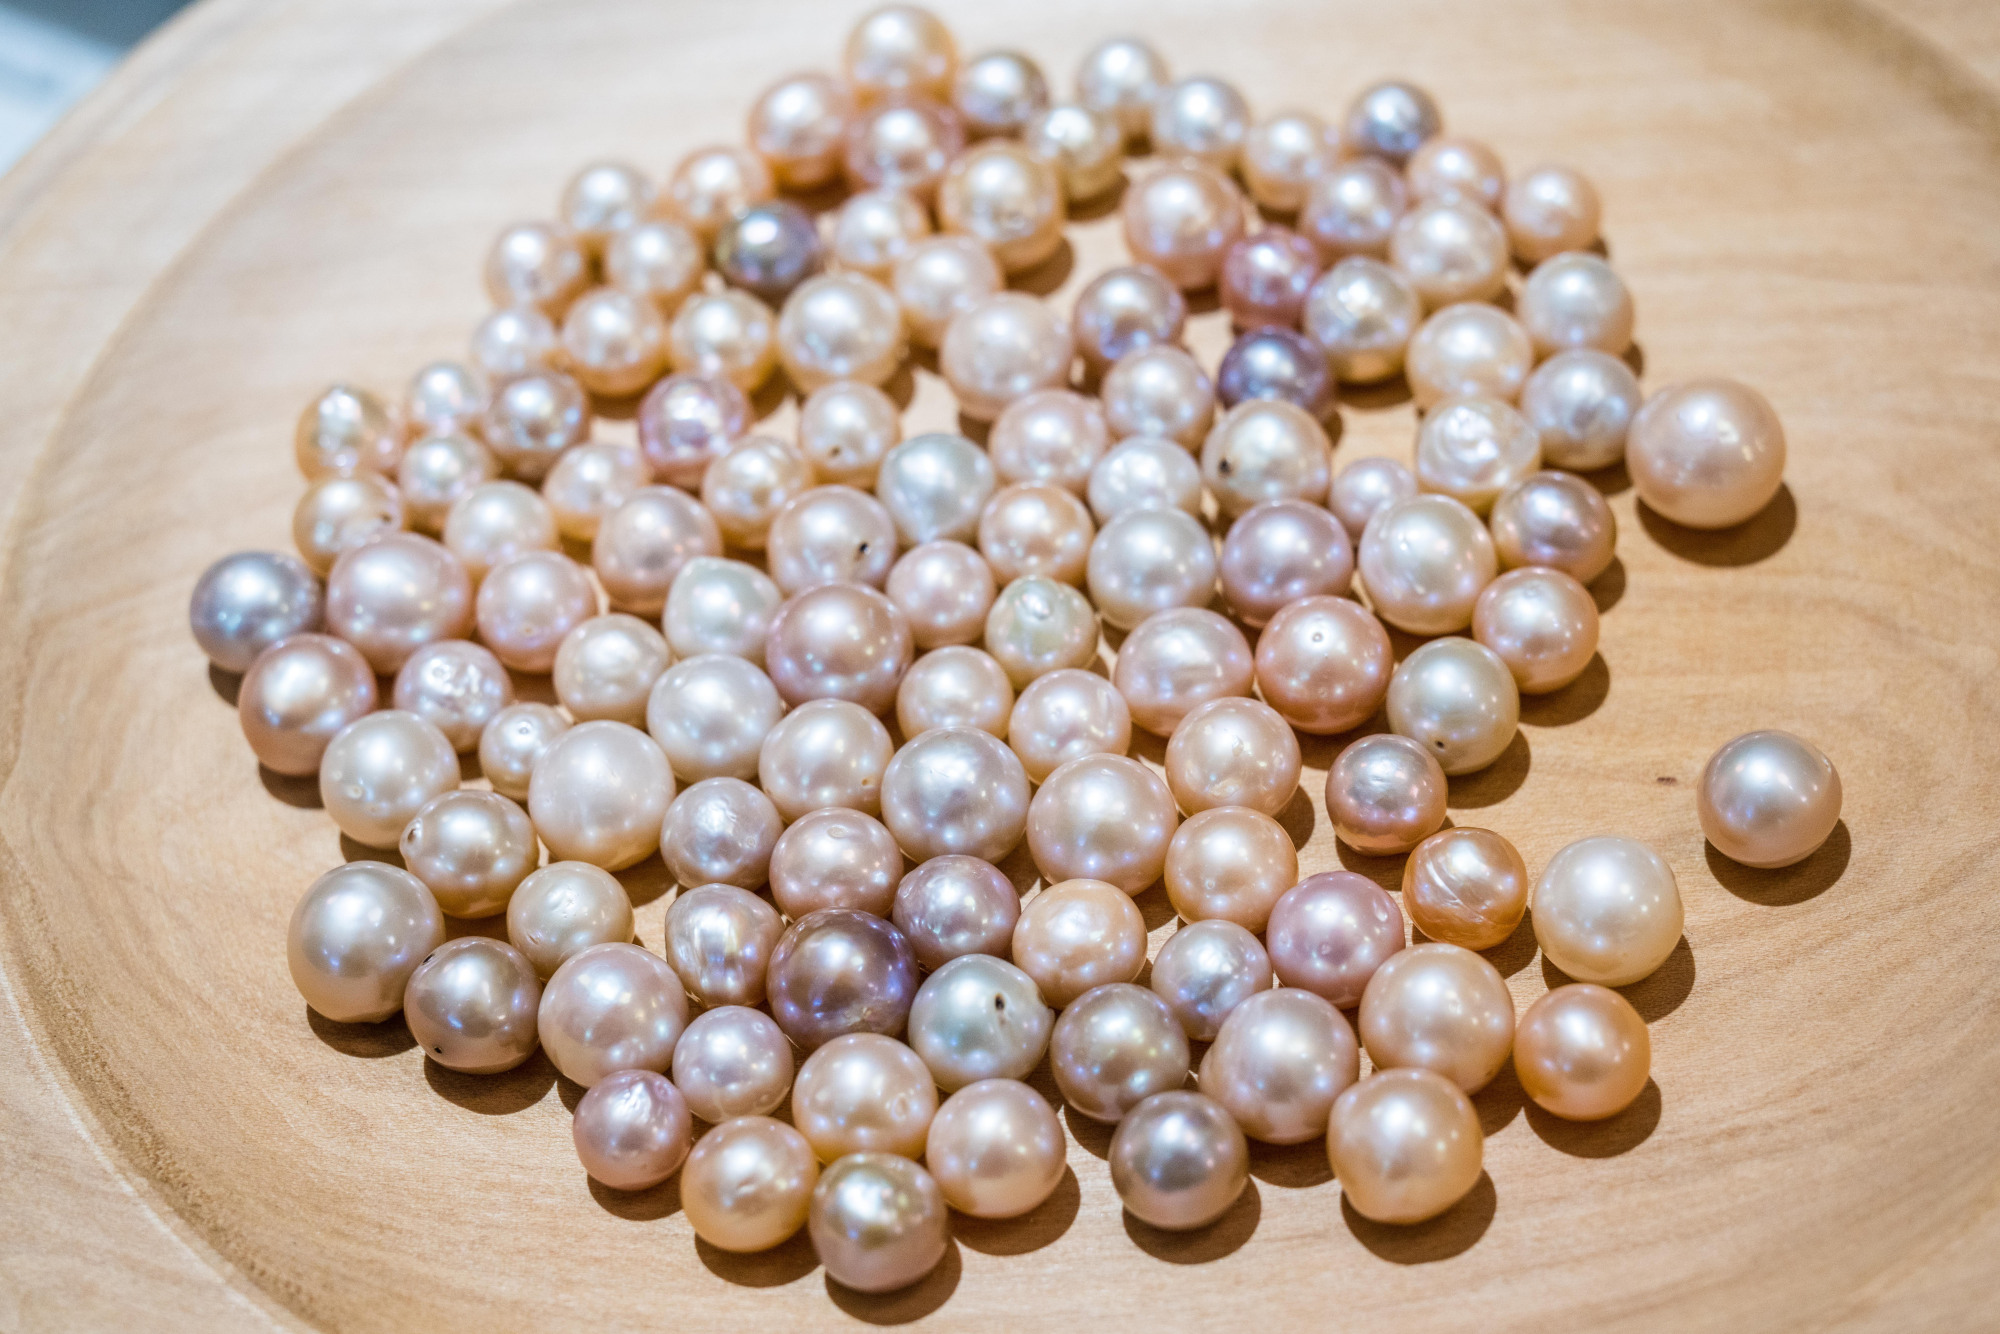 Freshwater pearls in Japan